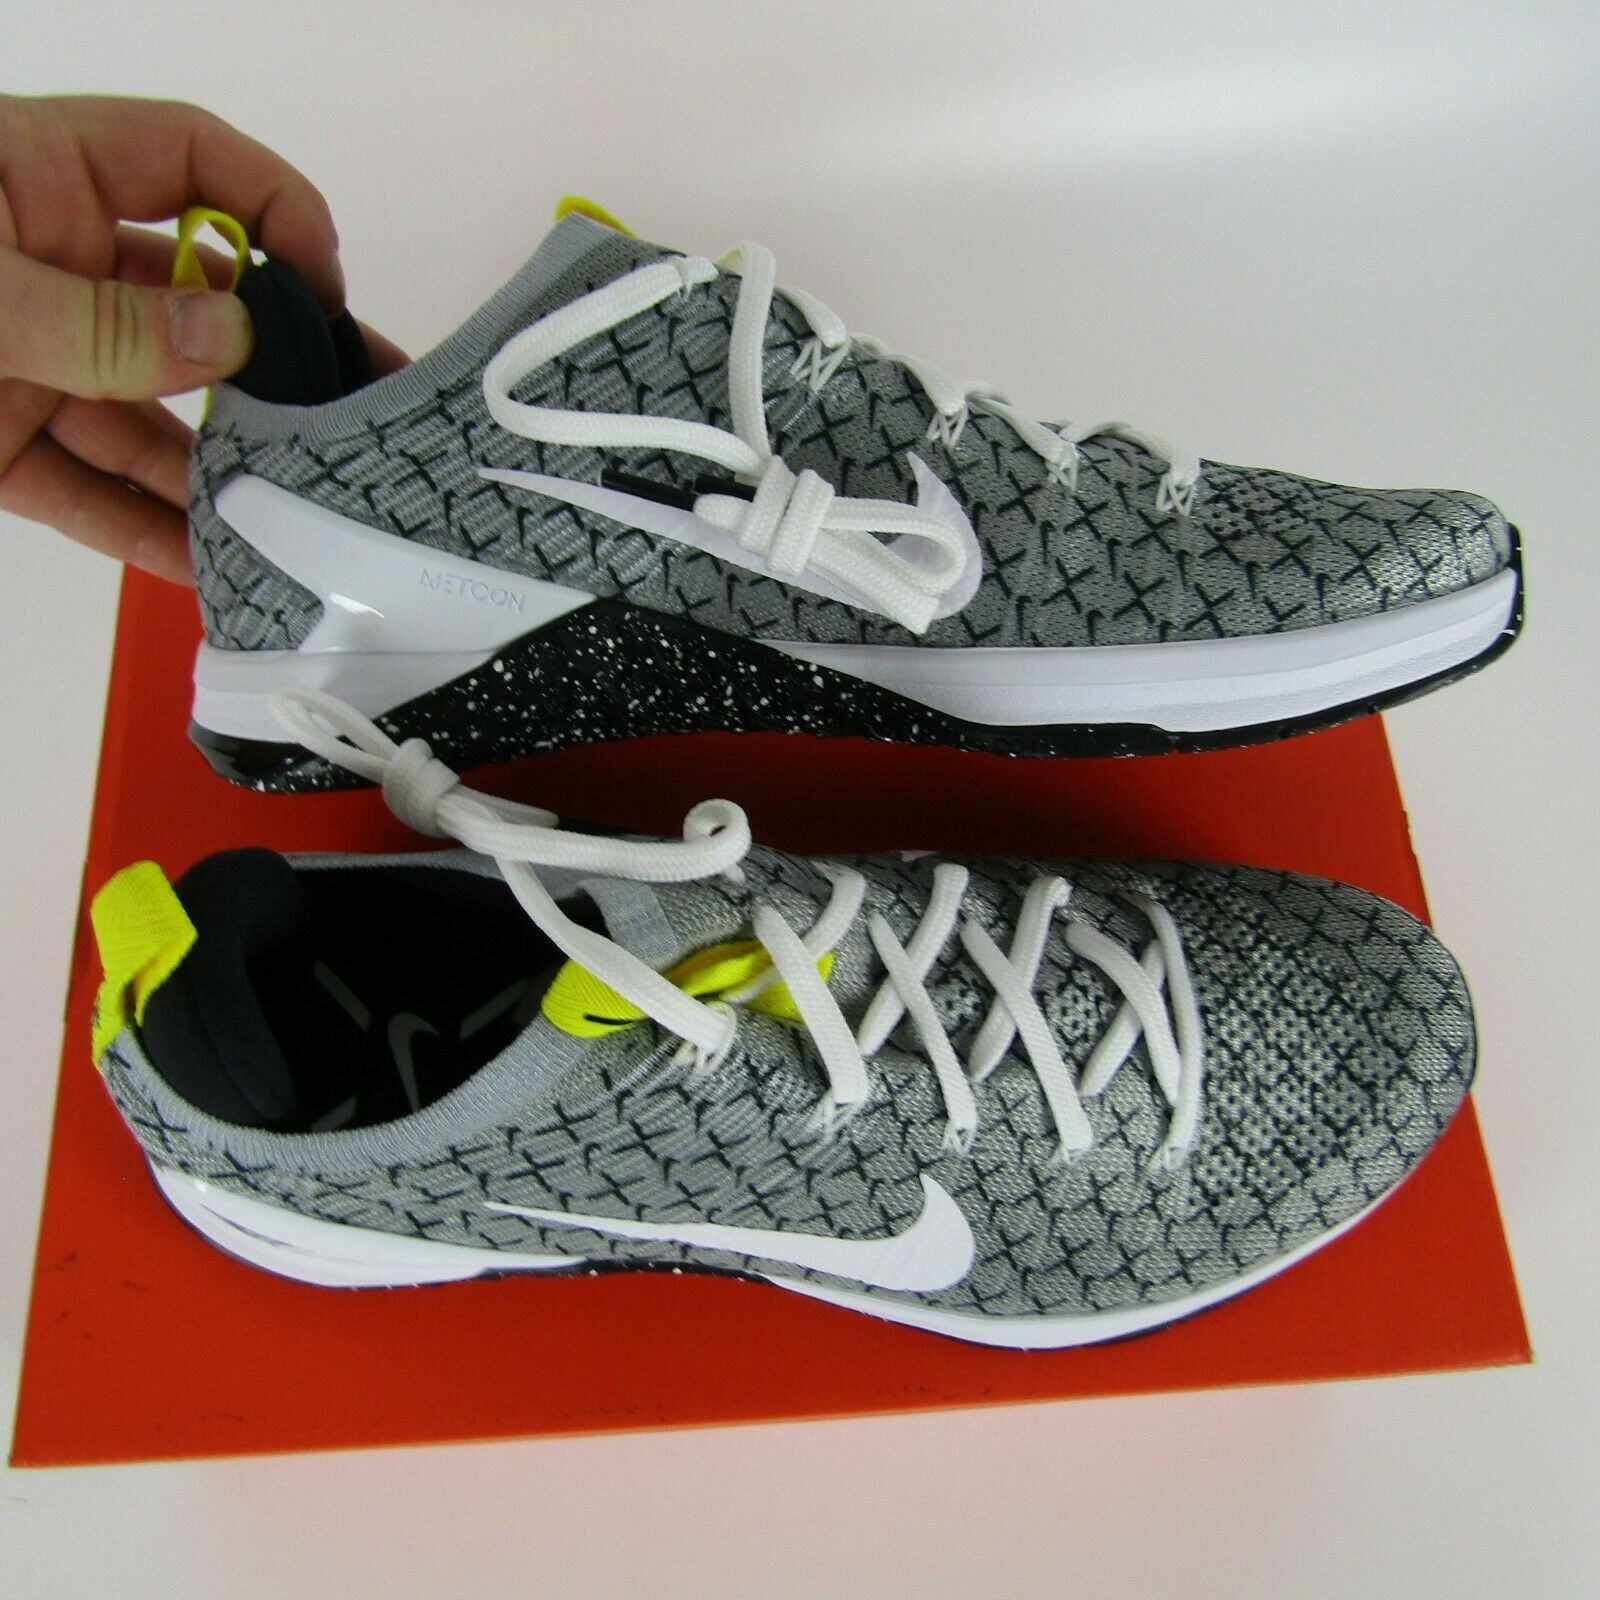 Nike Metcon DSX Flyknit 2X Mens Black White Yellow Training Running AO2807-017 image 6